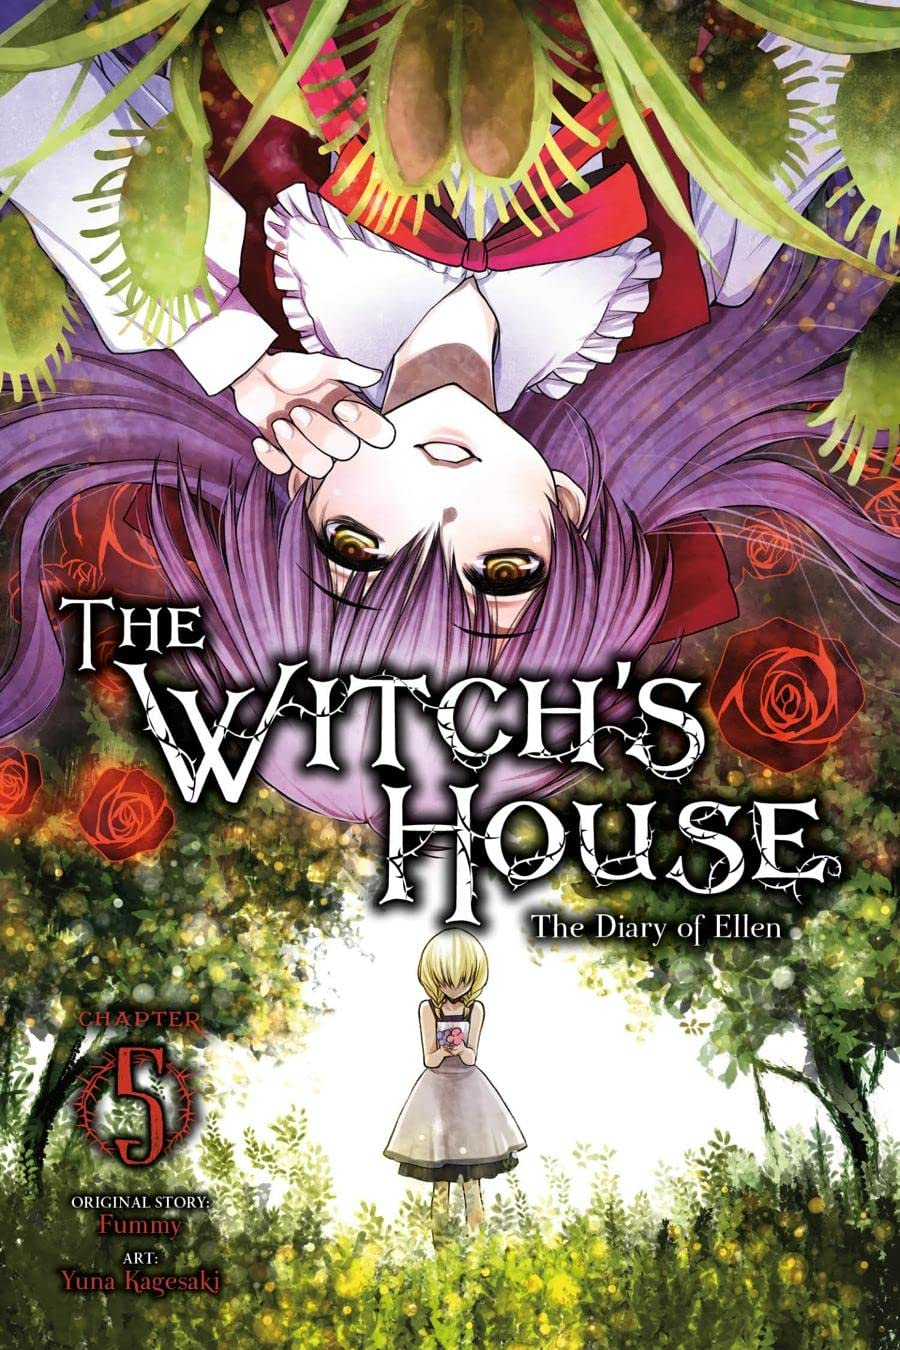 The Witch's House: The Diary of Ellen #5